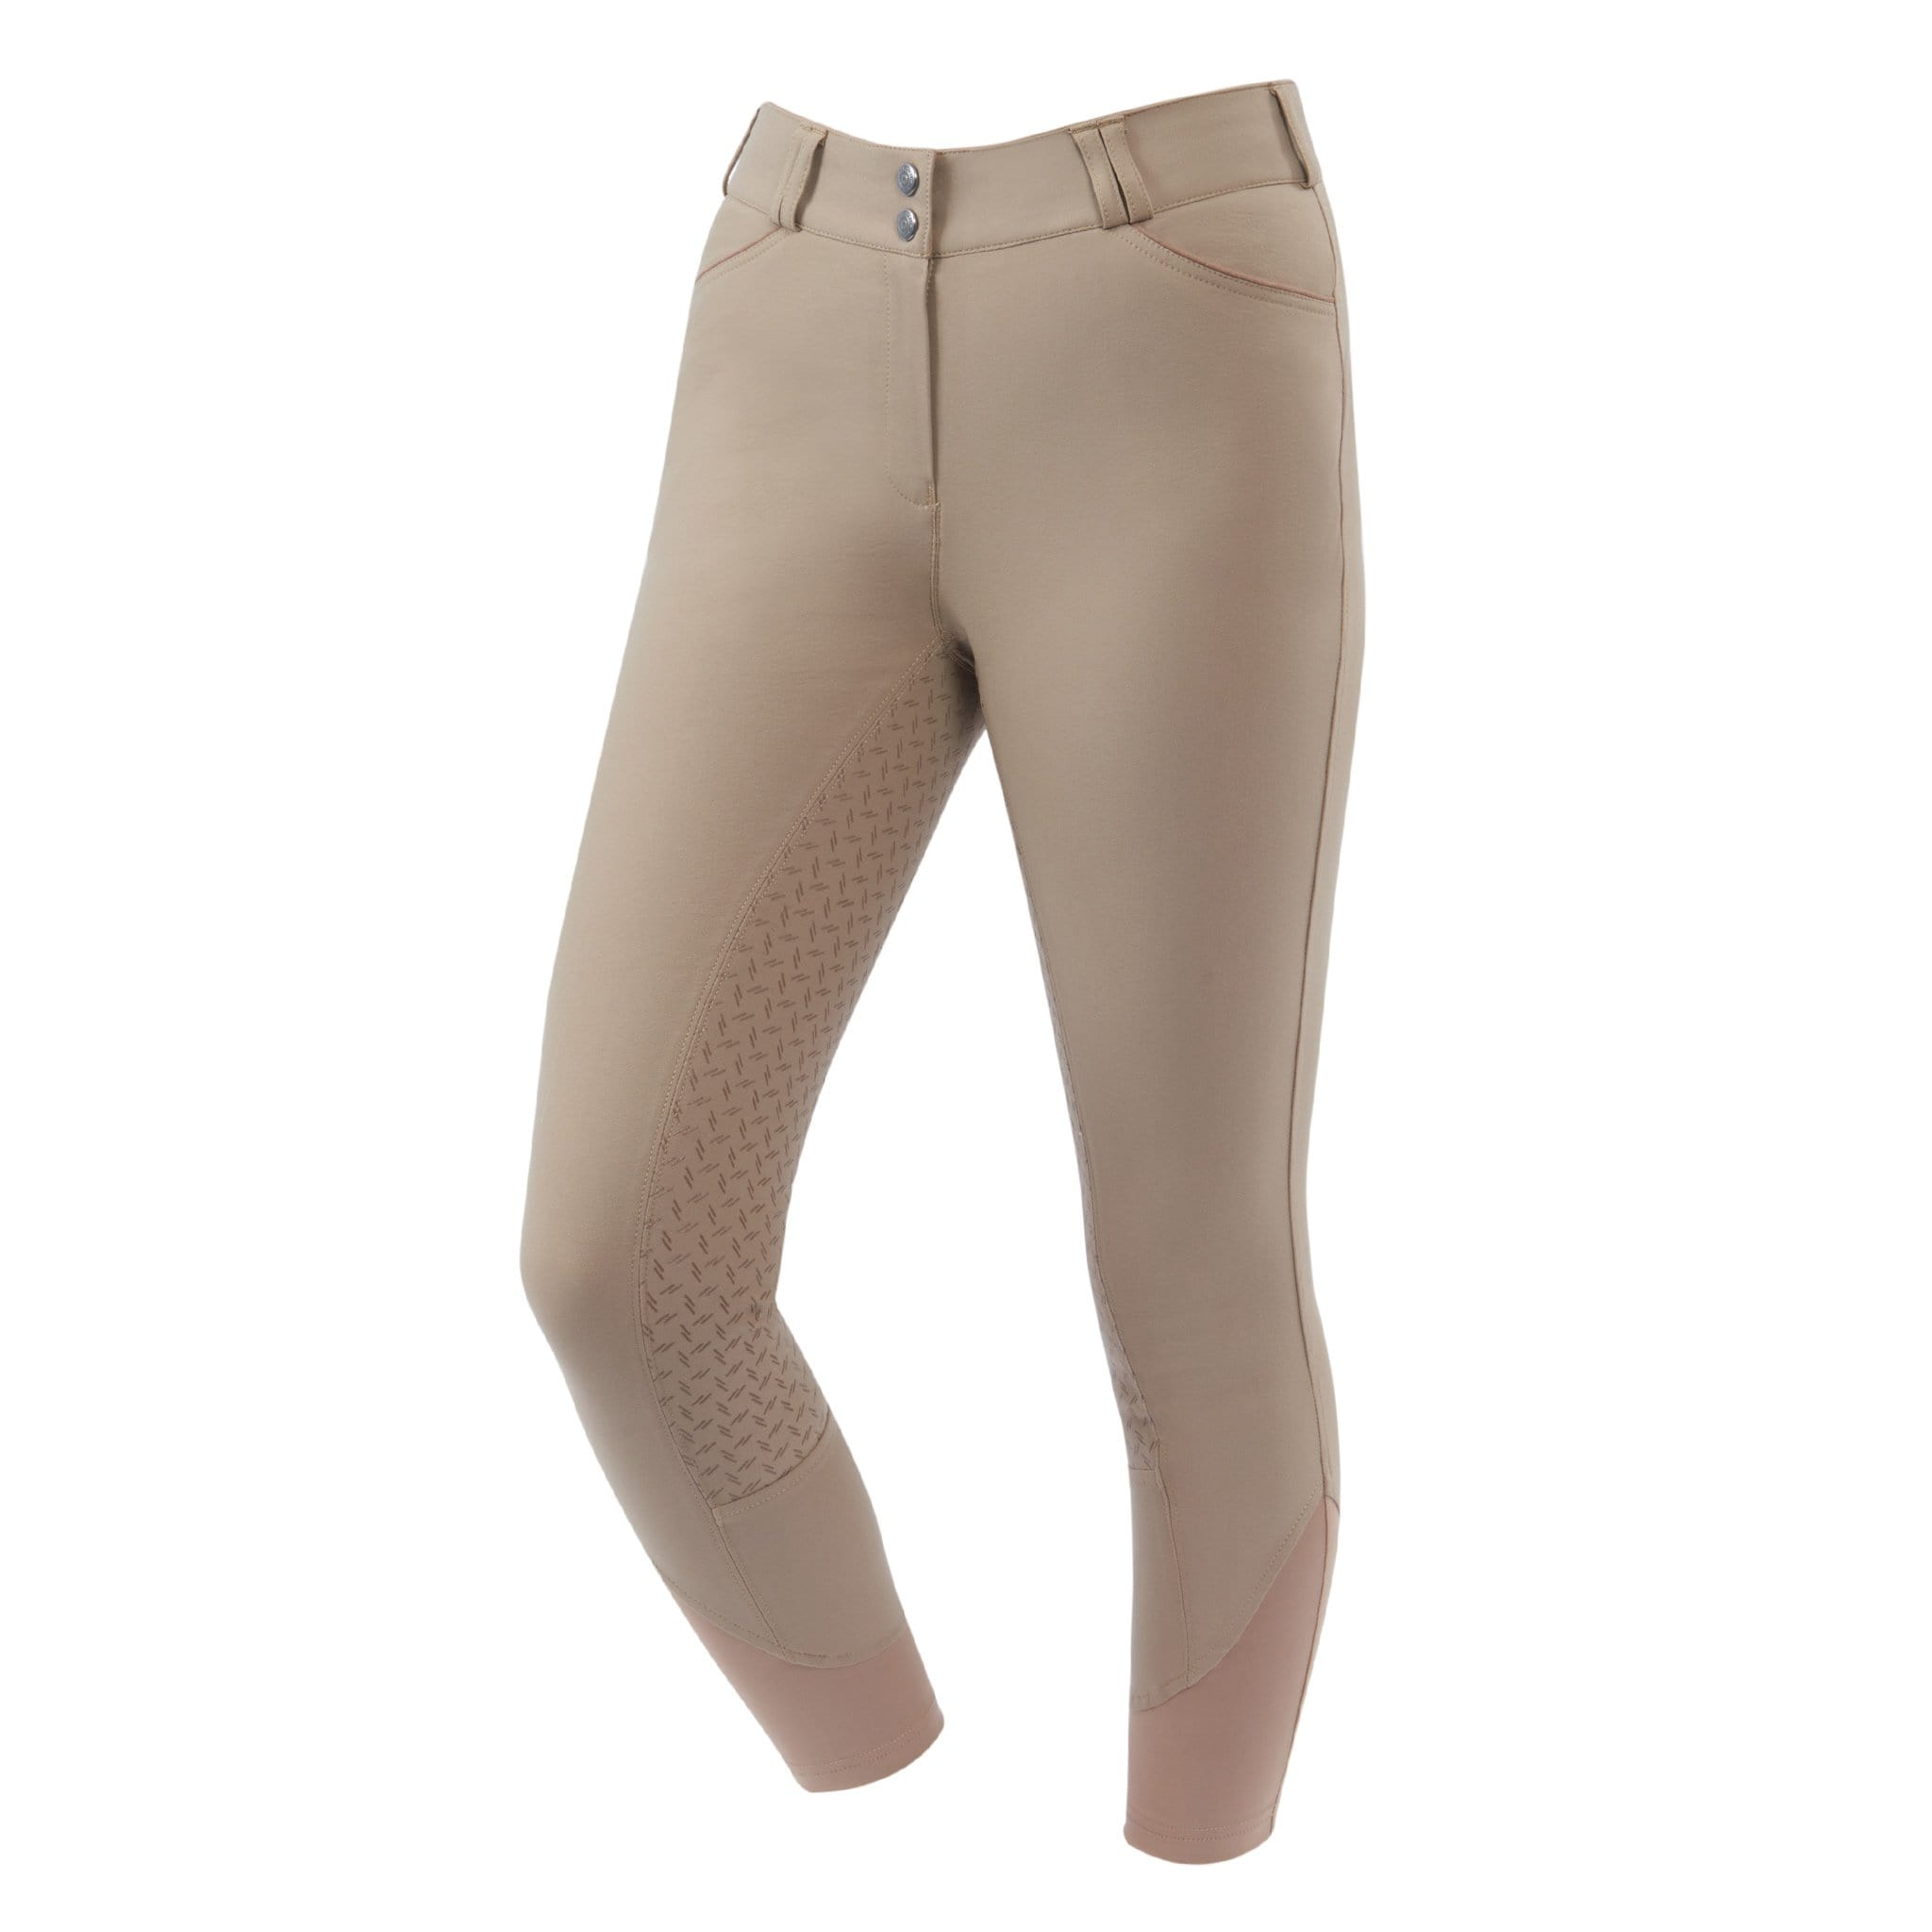 Dublin Prime Gel Silicone Full Seat Breeches 809838 Beige Front View